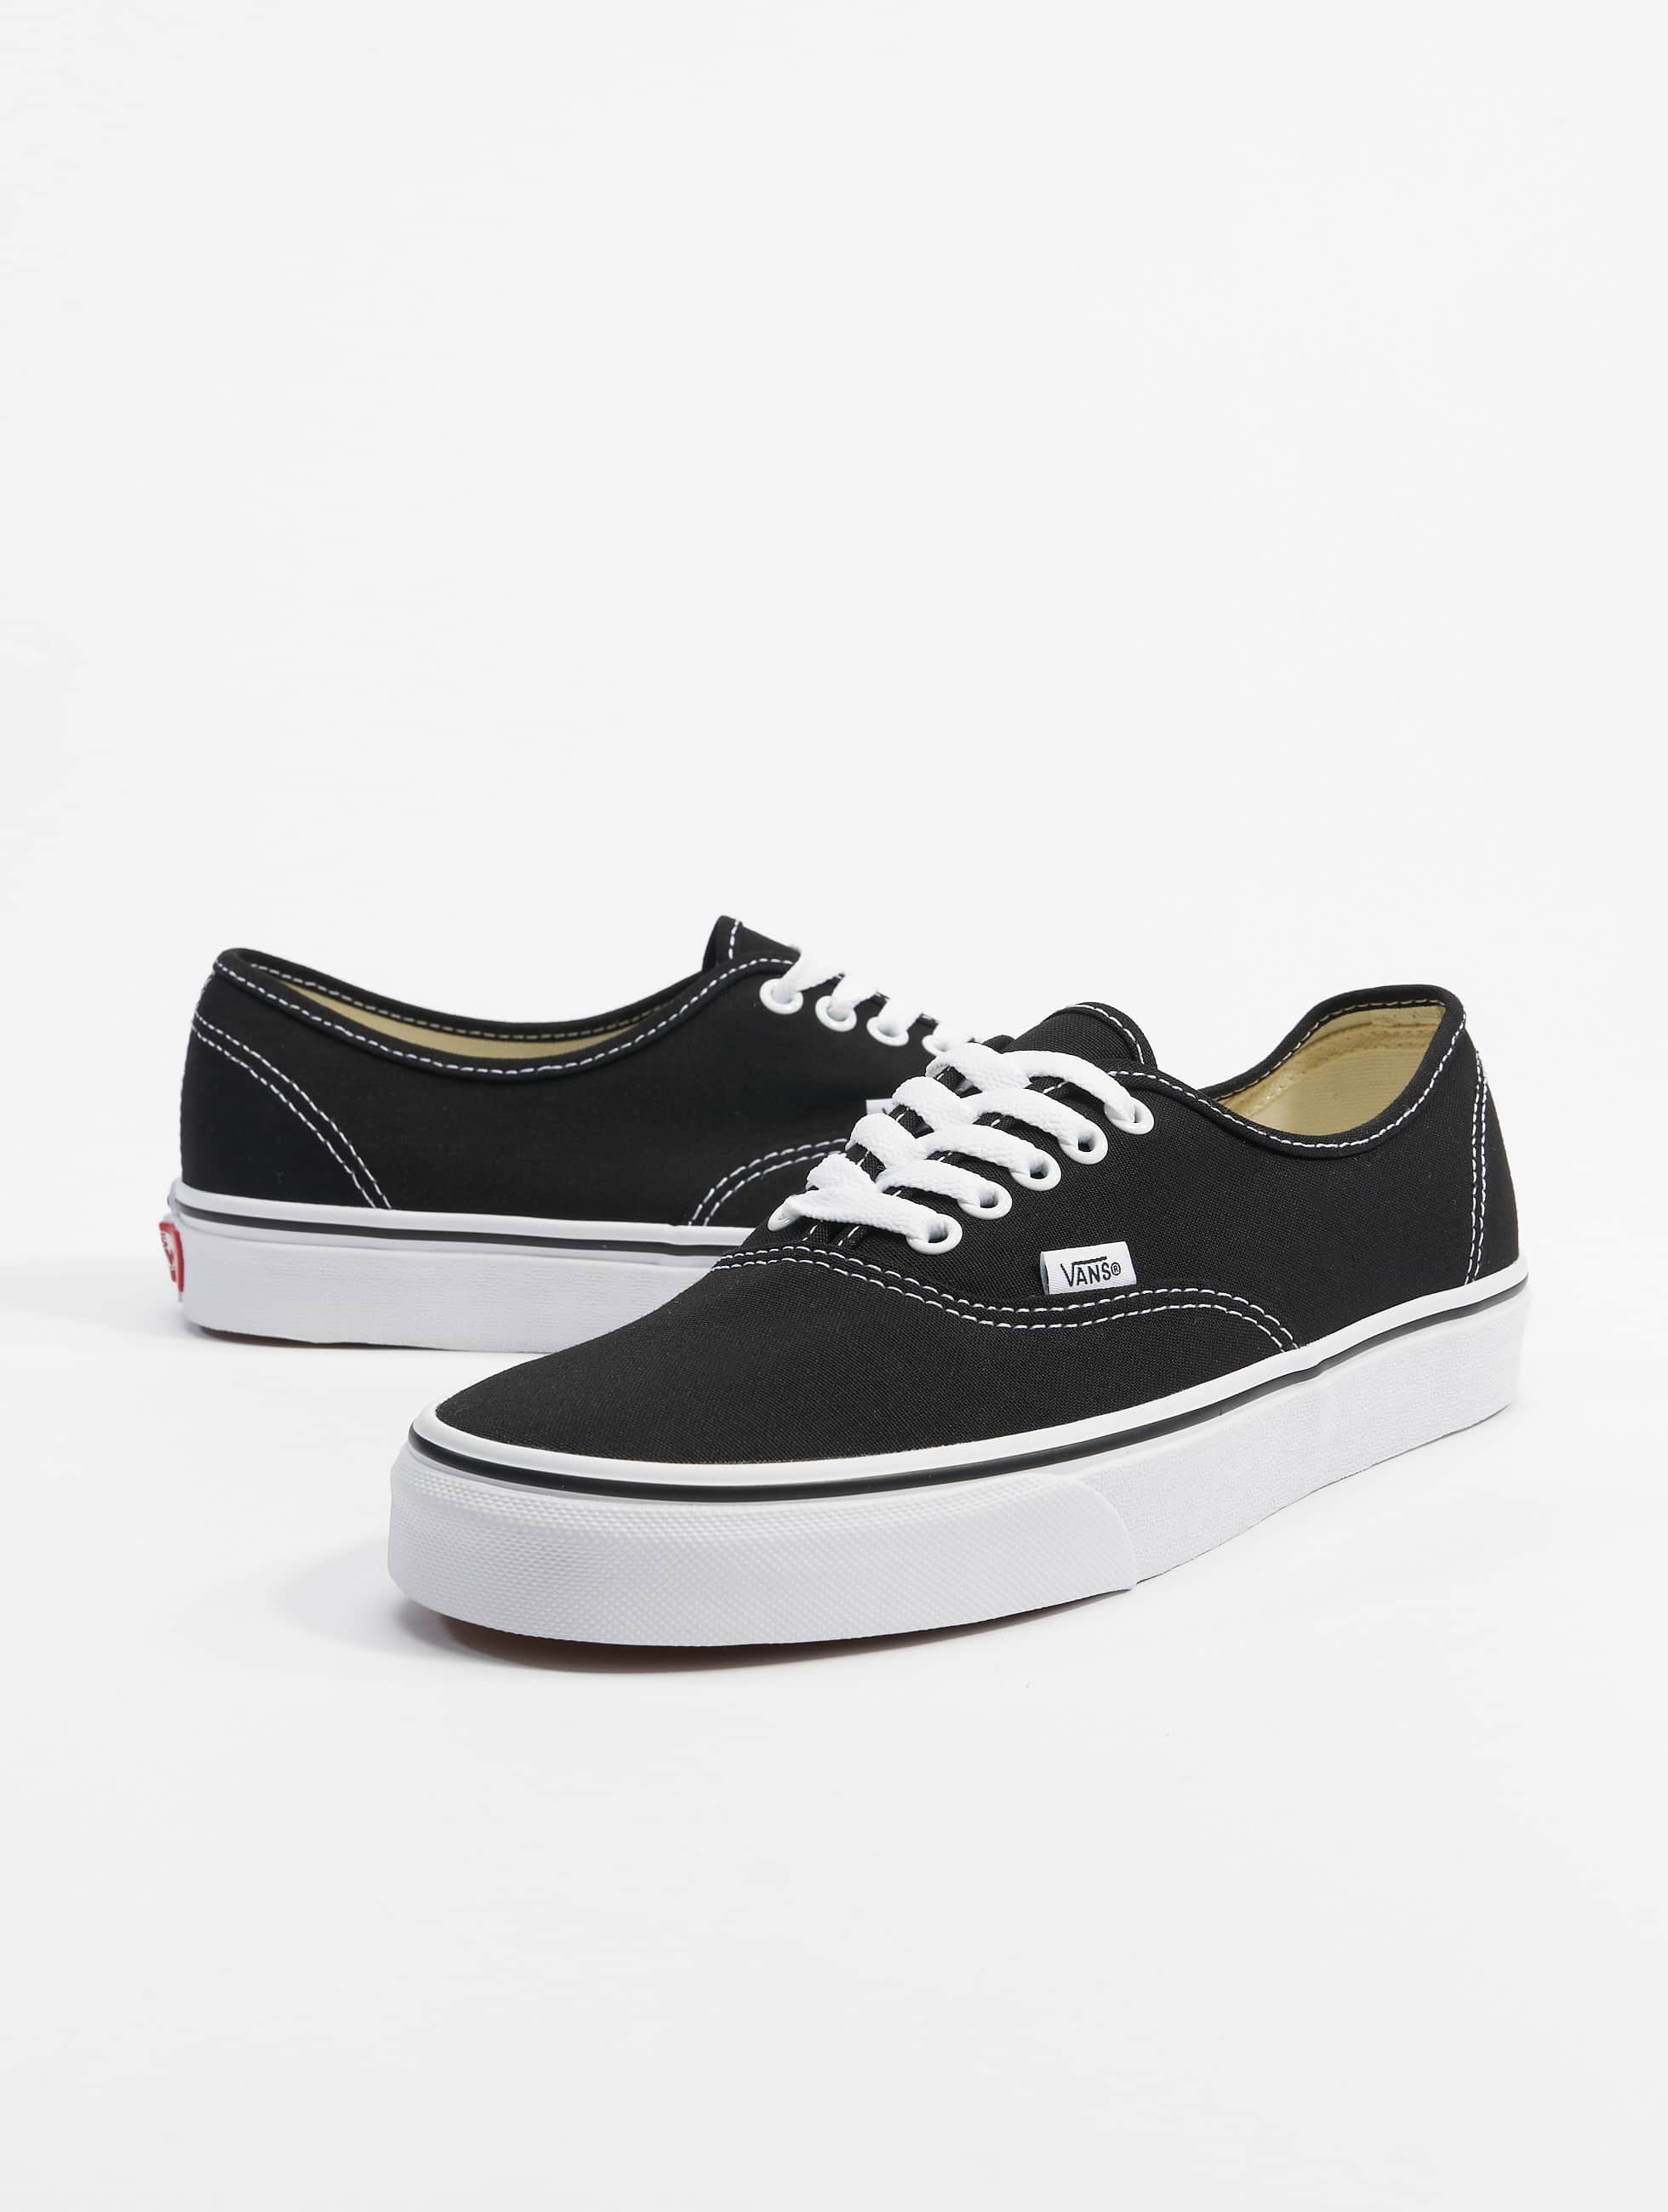 Vans Chaussures / Baskets Authentic en noir